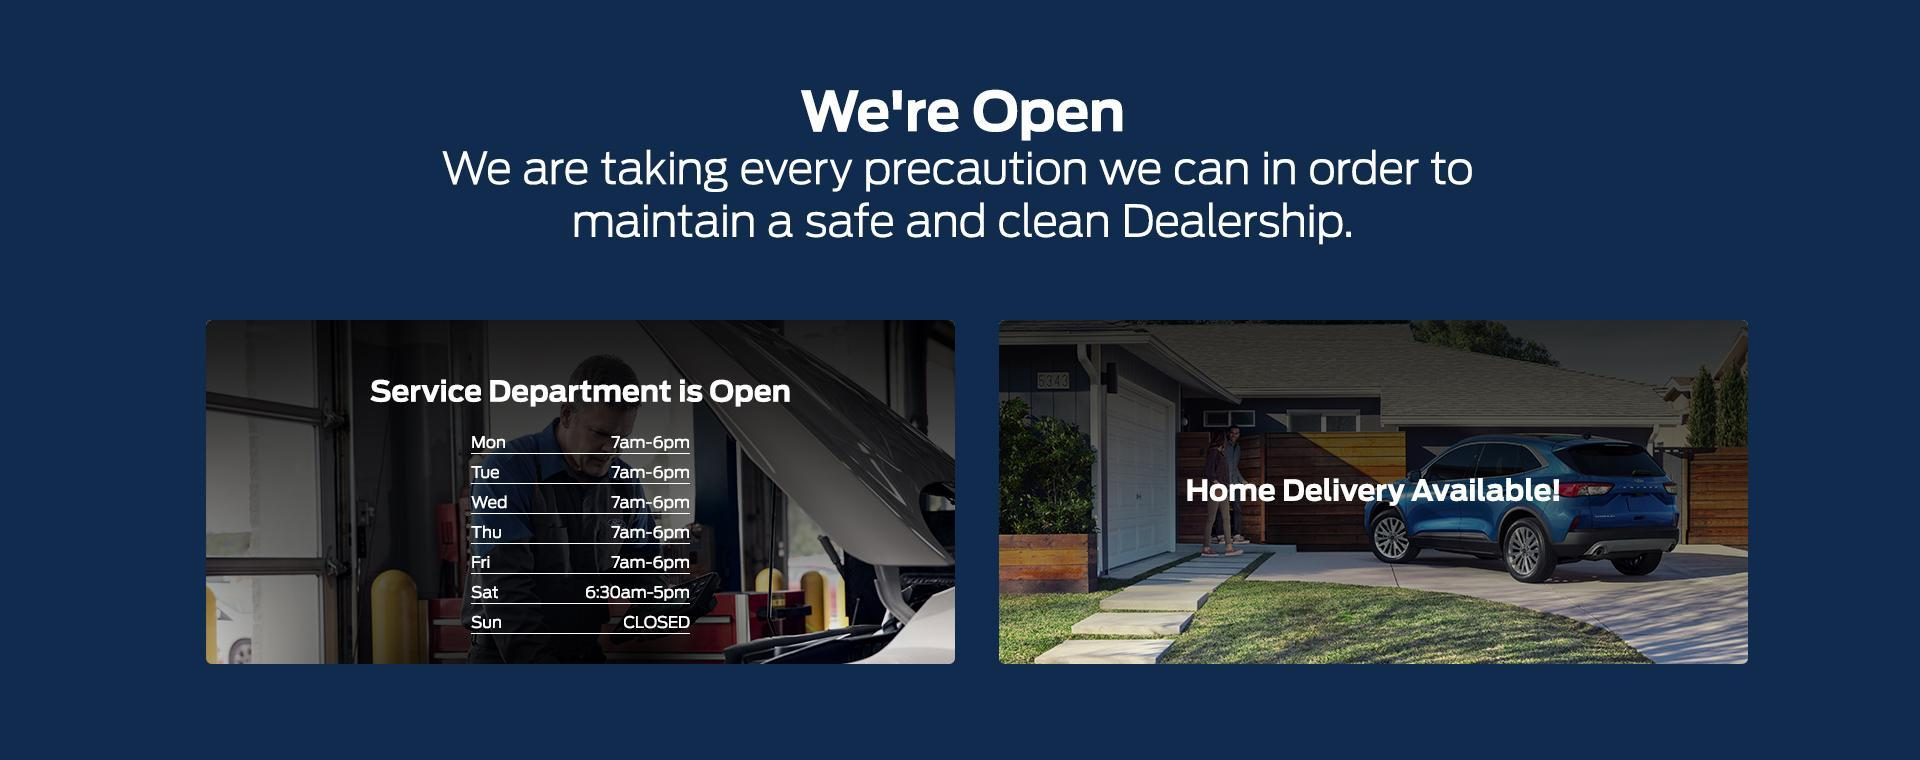 South Bay Ford - Service Department is Open